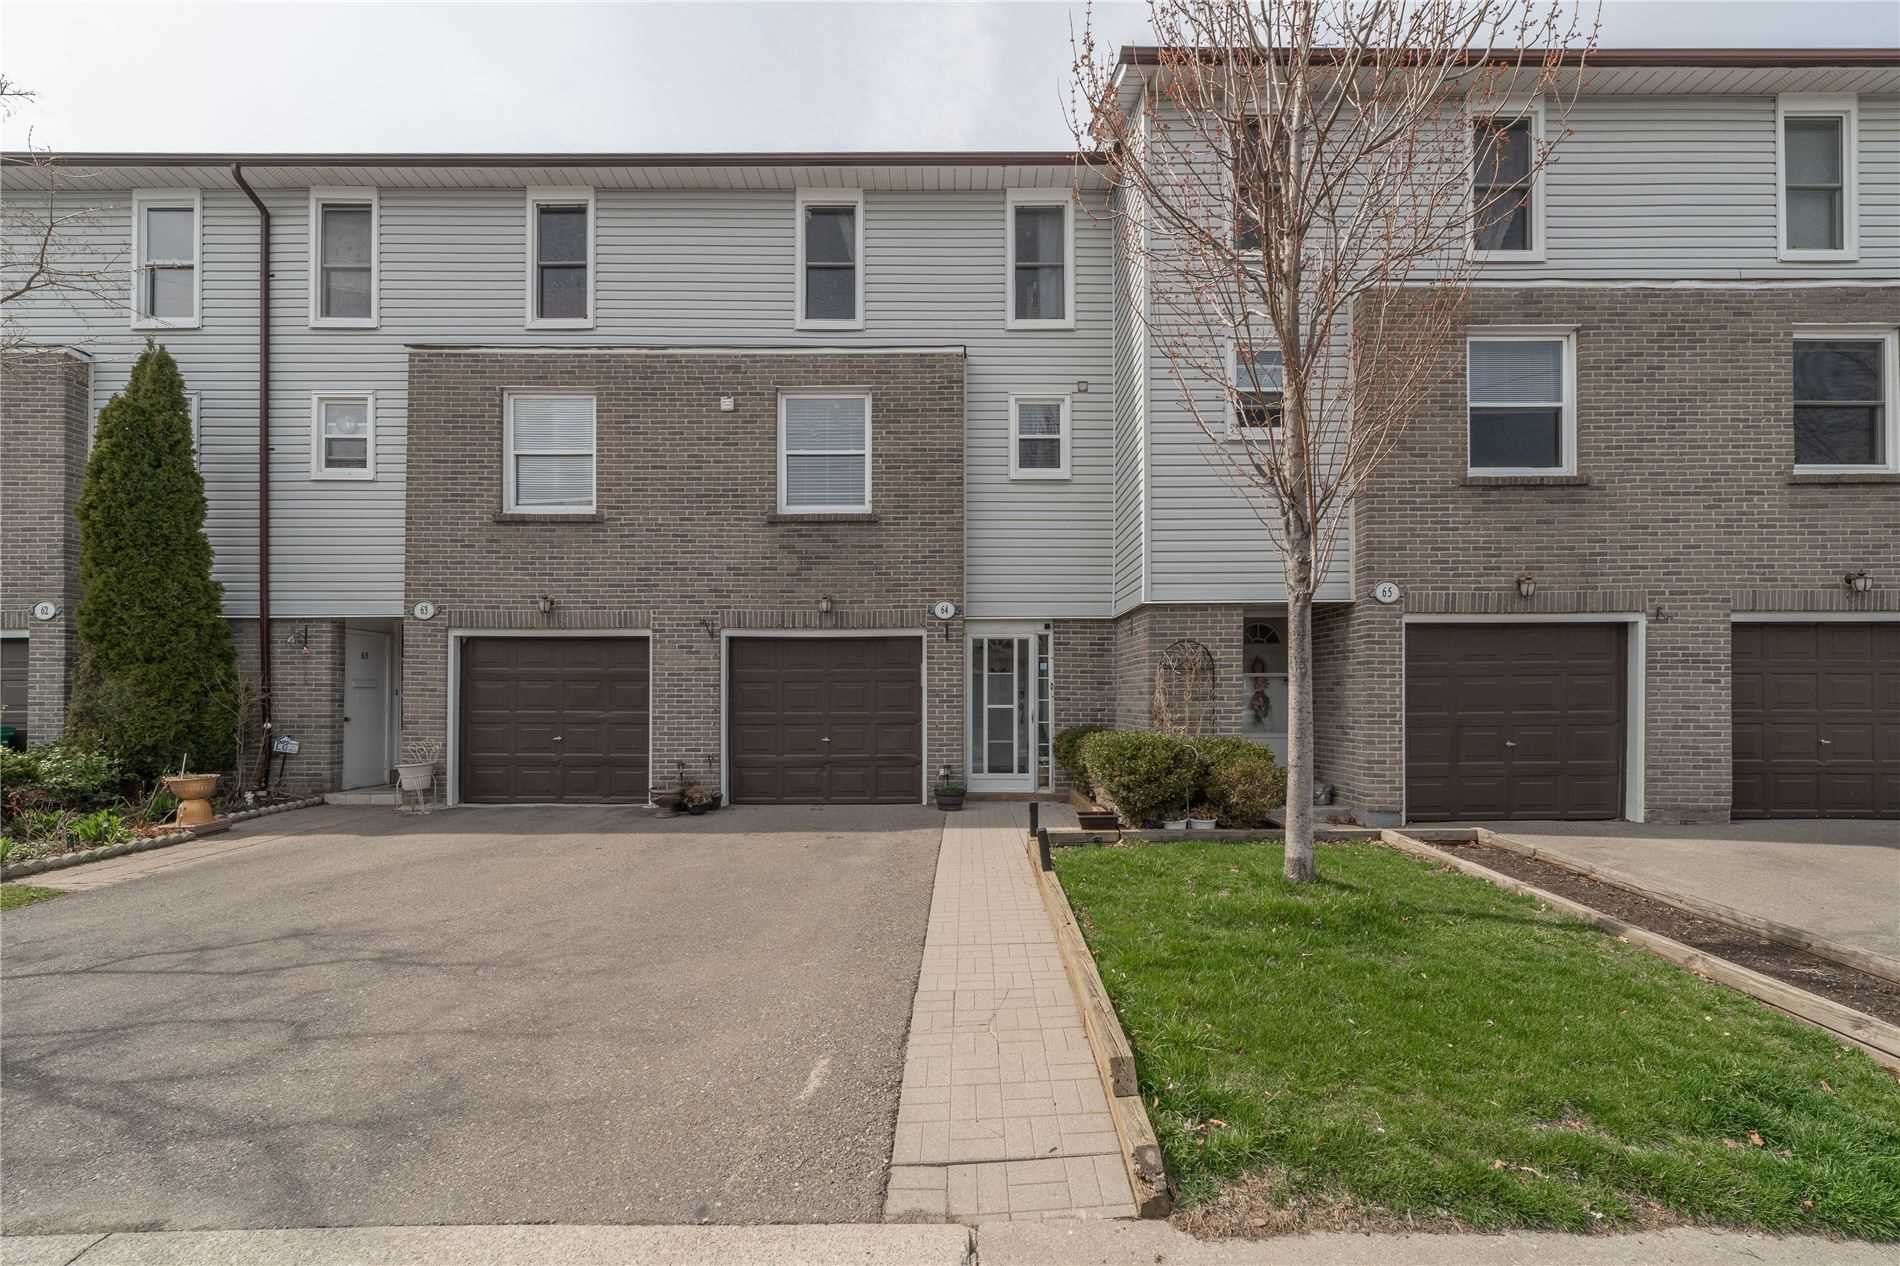 2440 Bromsgrove Rd, Mississauga, Ontario L5J4J7, 3 Bedrooms Bedrooms, ,3 BathroomsBathrooms,Condo Townhouse,For Sale,Bromsgrove,W5189566